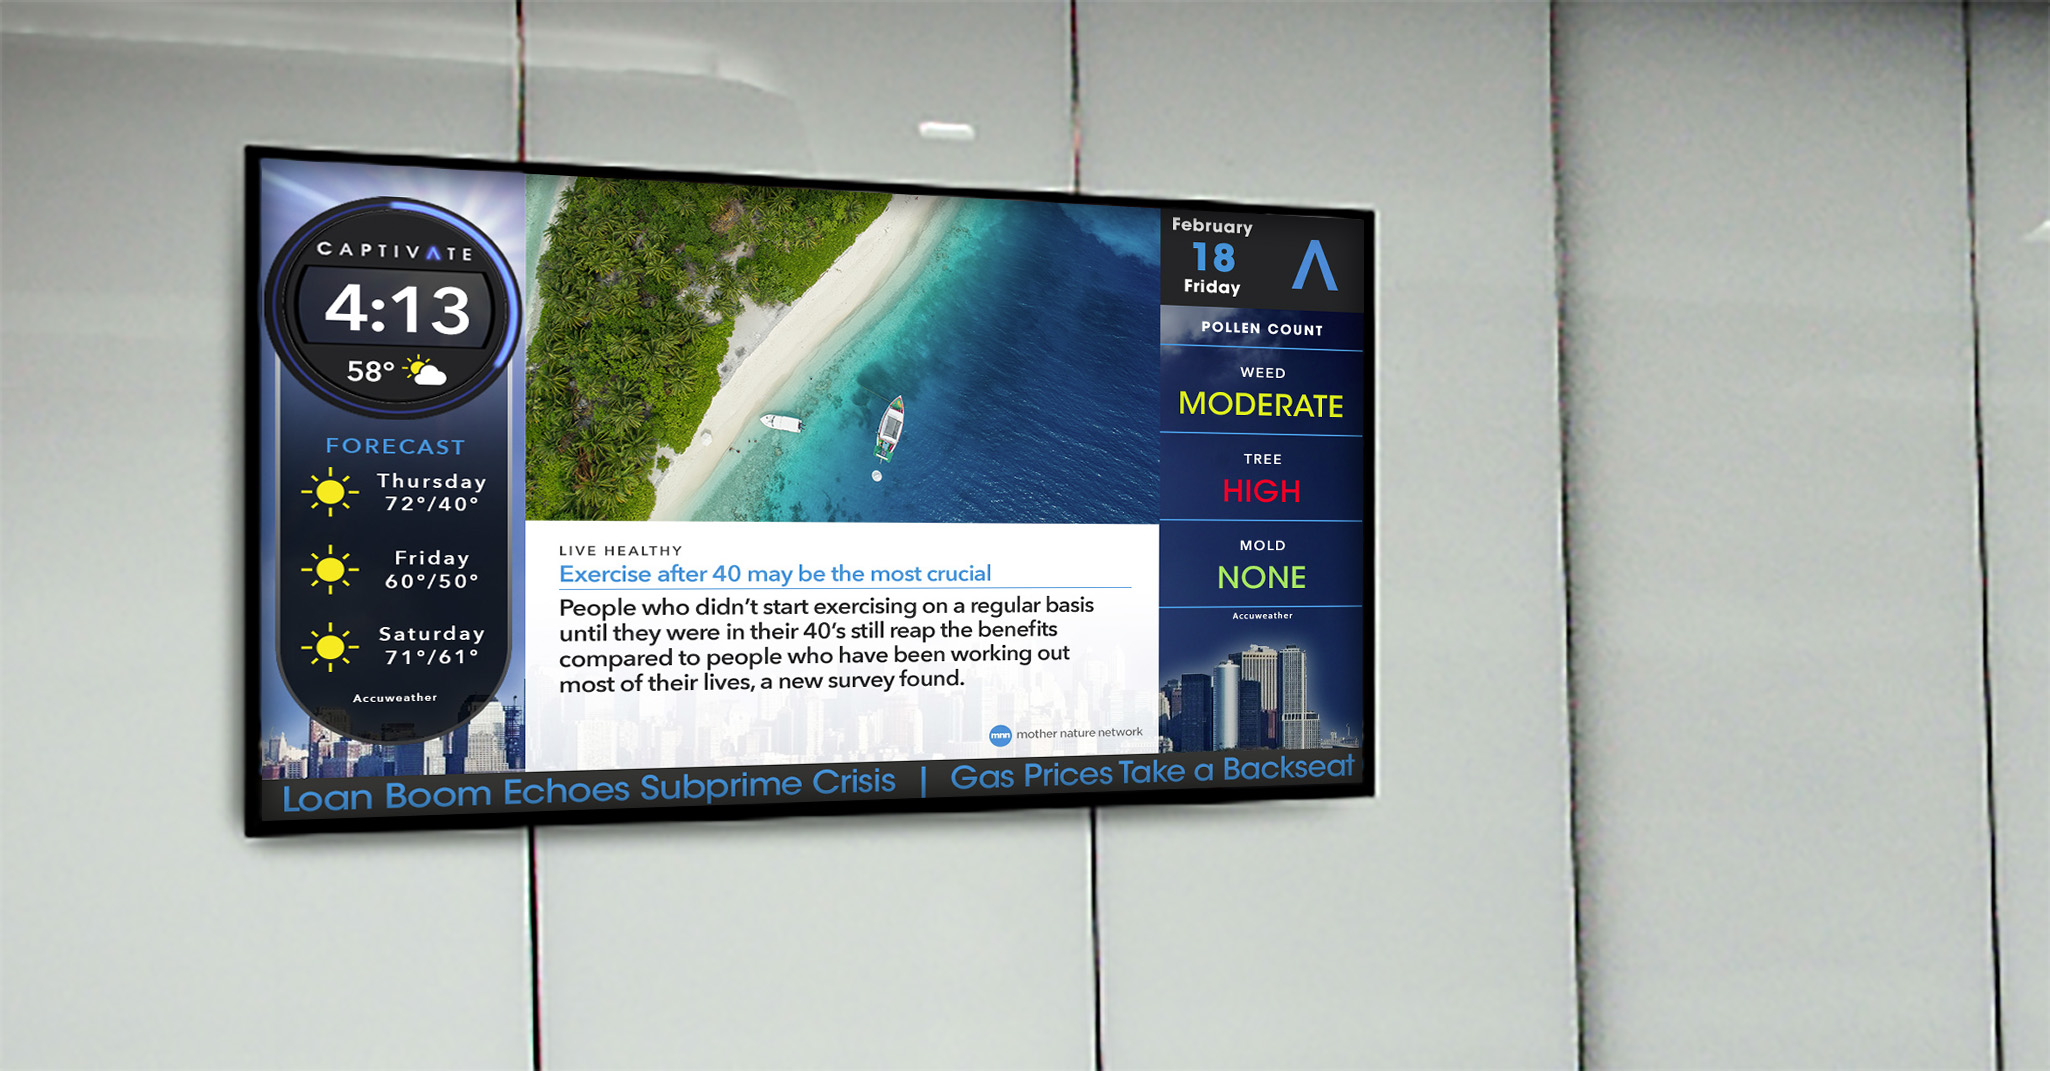 Large Format Display Captivate Lobby Screen